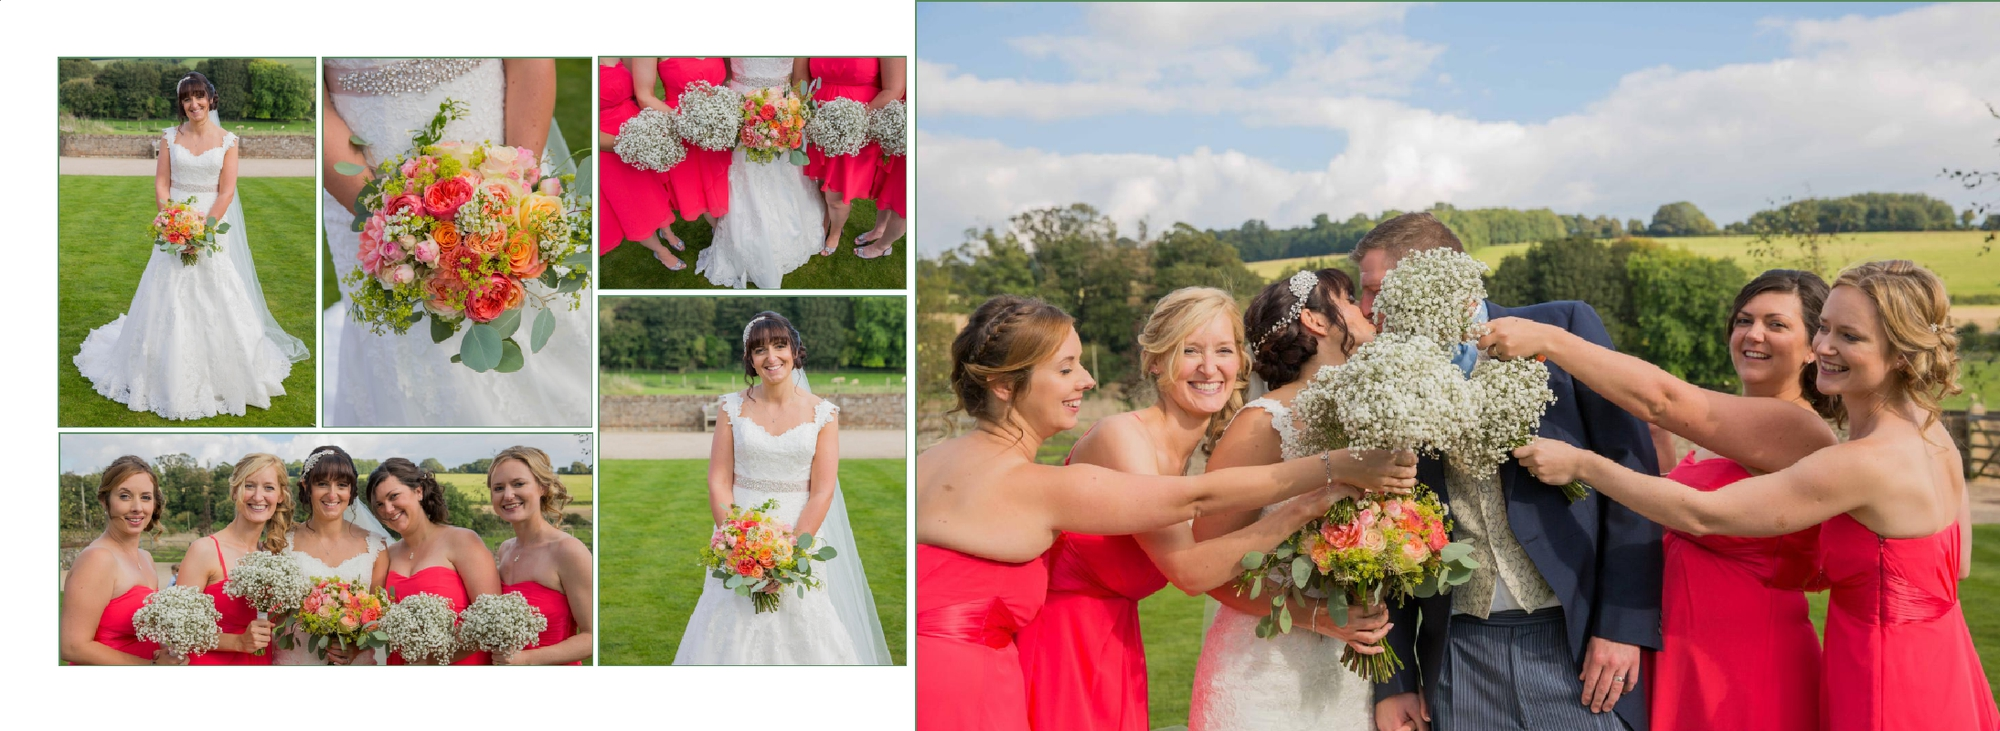 Kimberley Garrod photography Bridemaids farbridge